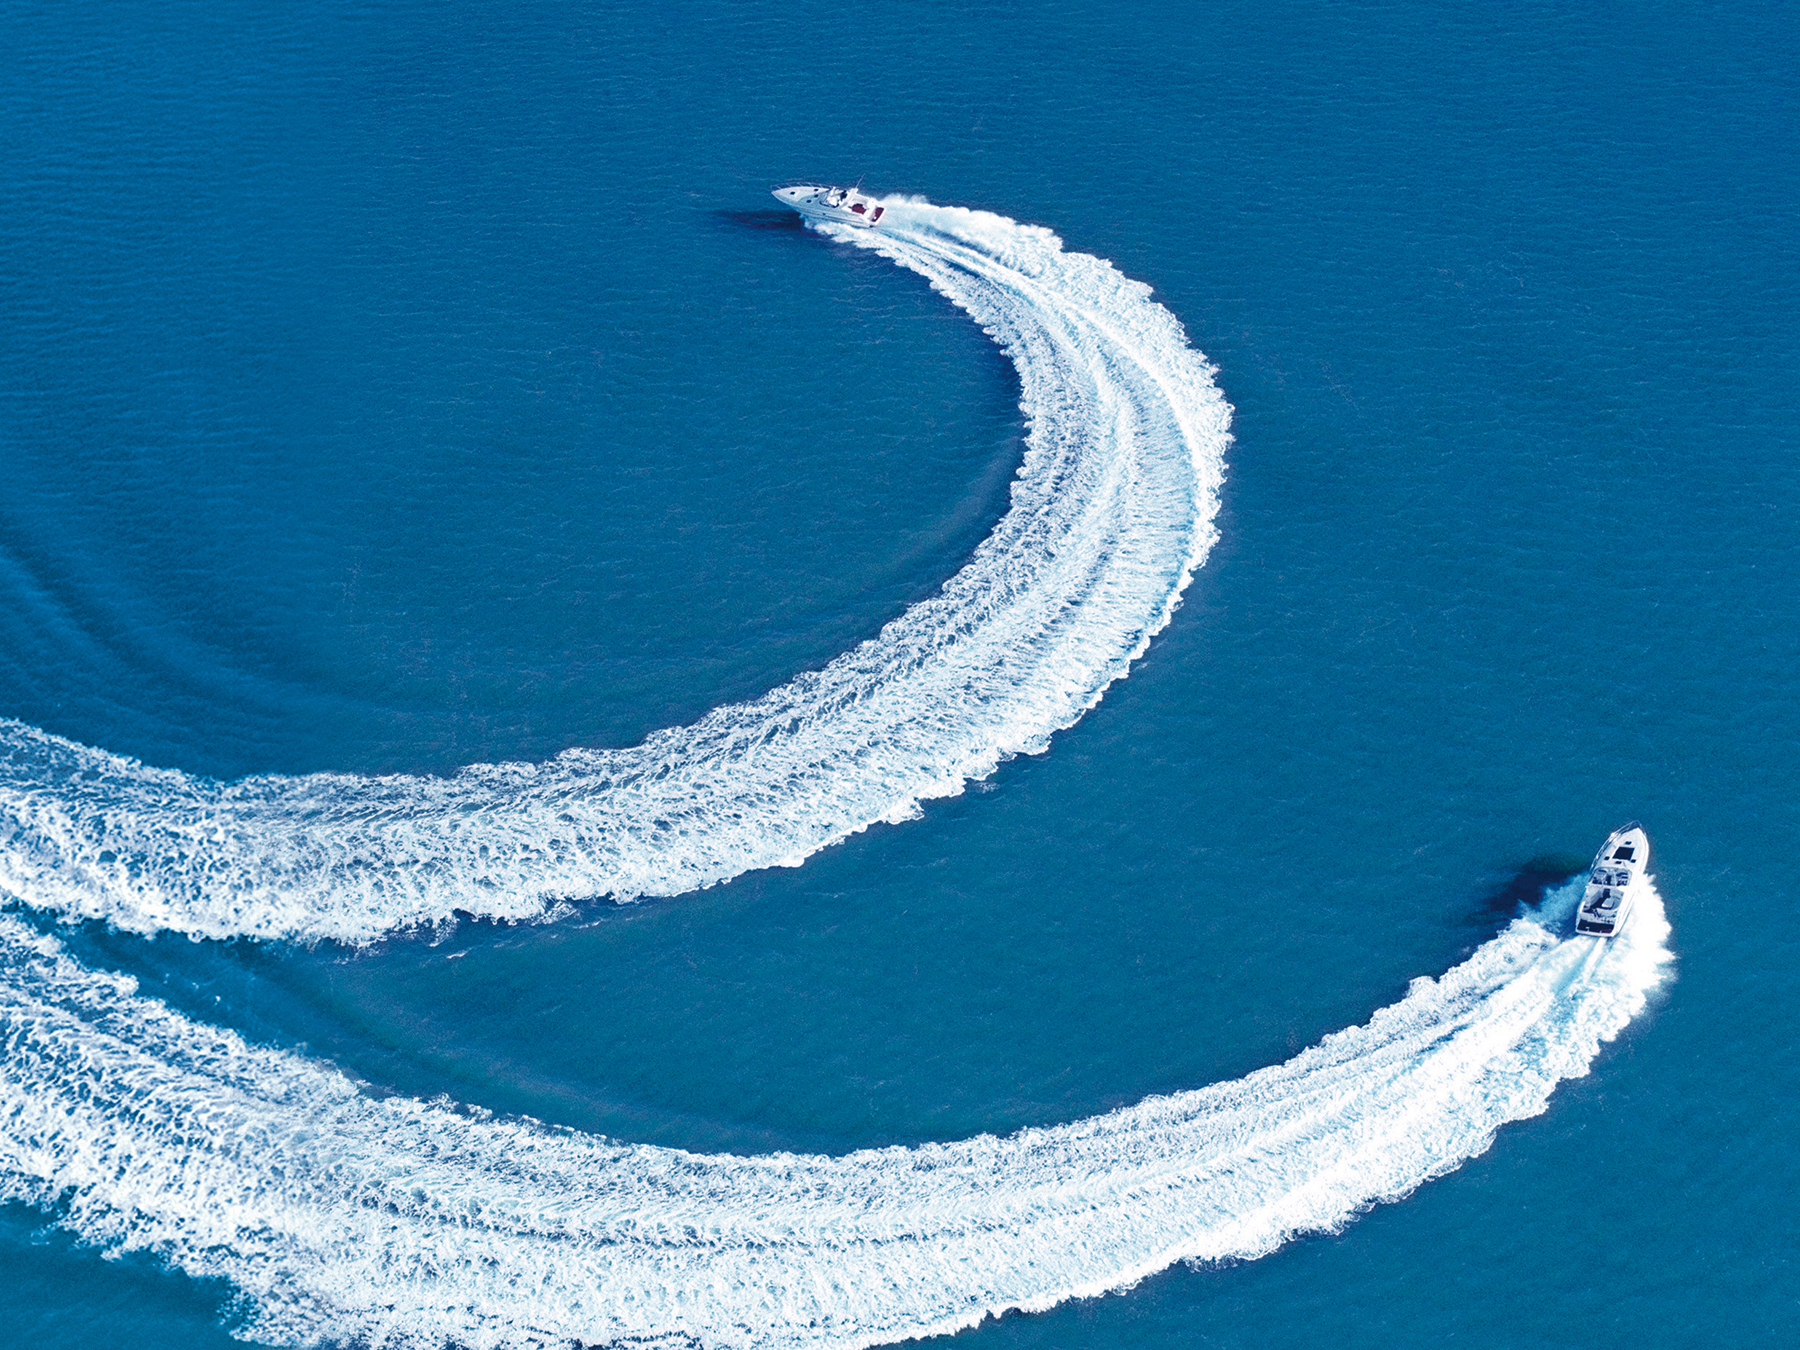 Overhead photo of Volvo Penta boats circling around in the water